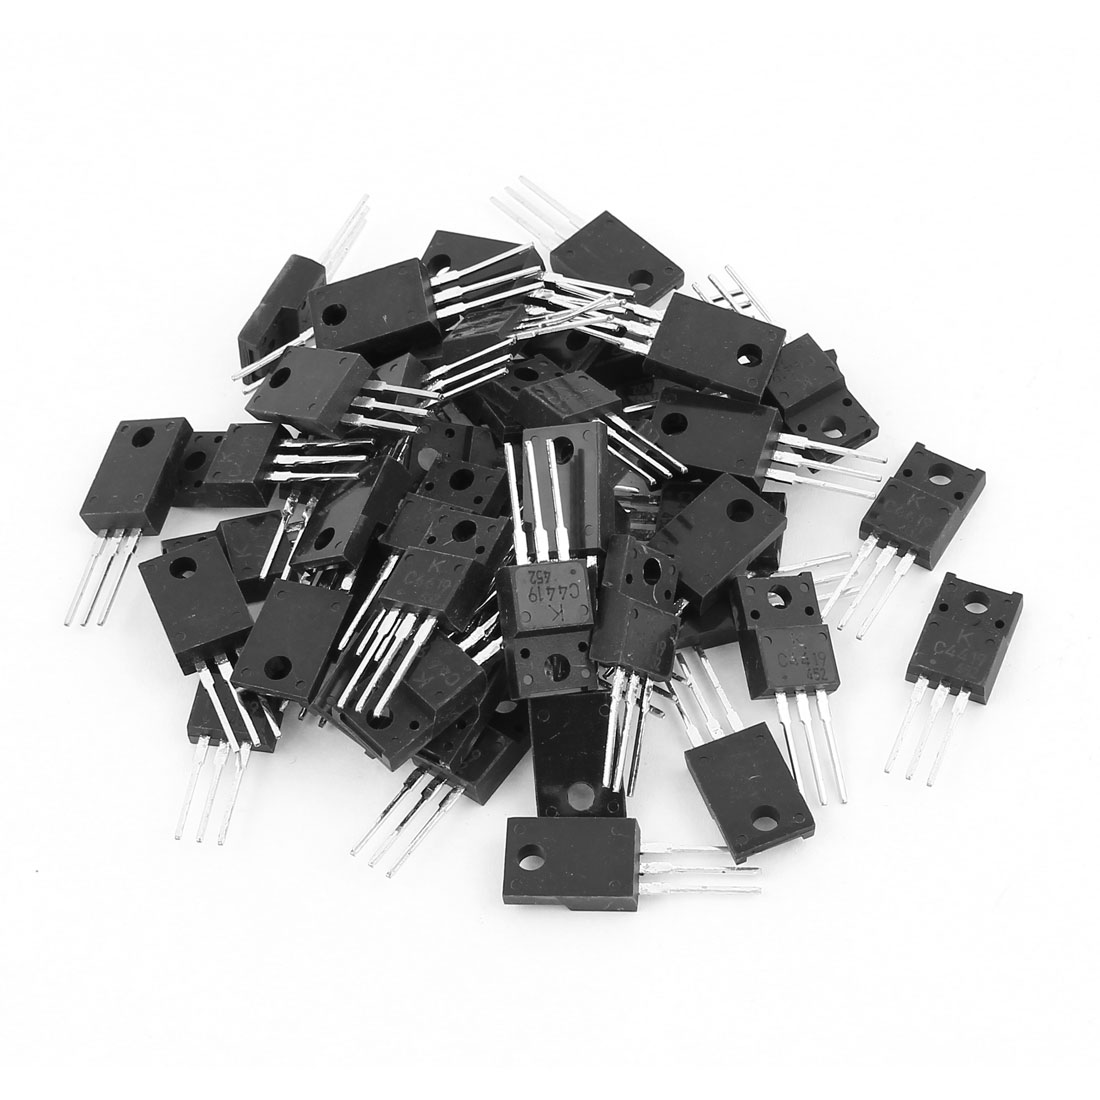 50 Pcs ISC4419 TO-3PN Silicon NPN Power Transistors